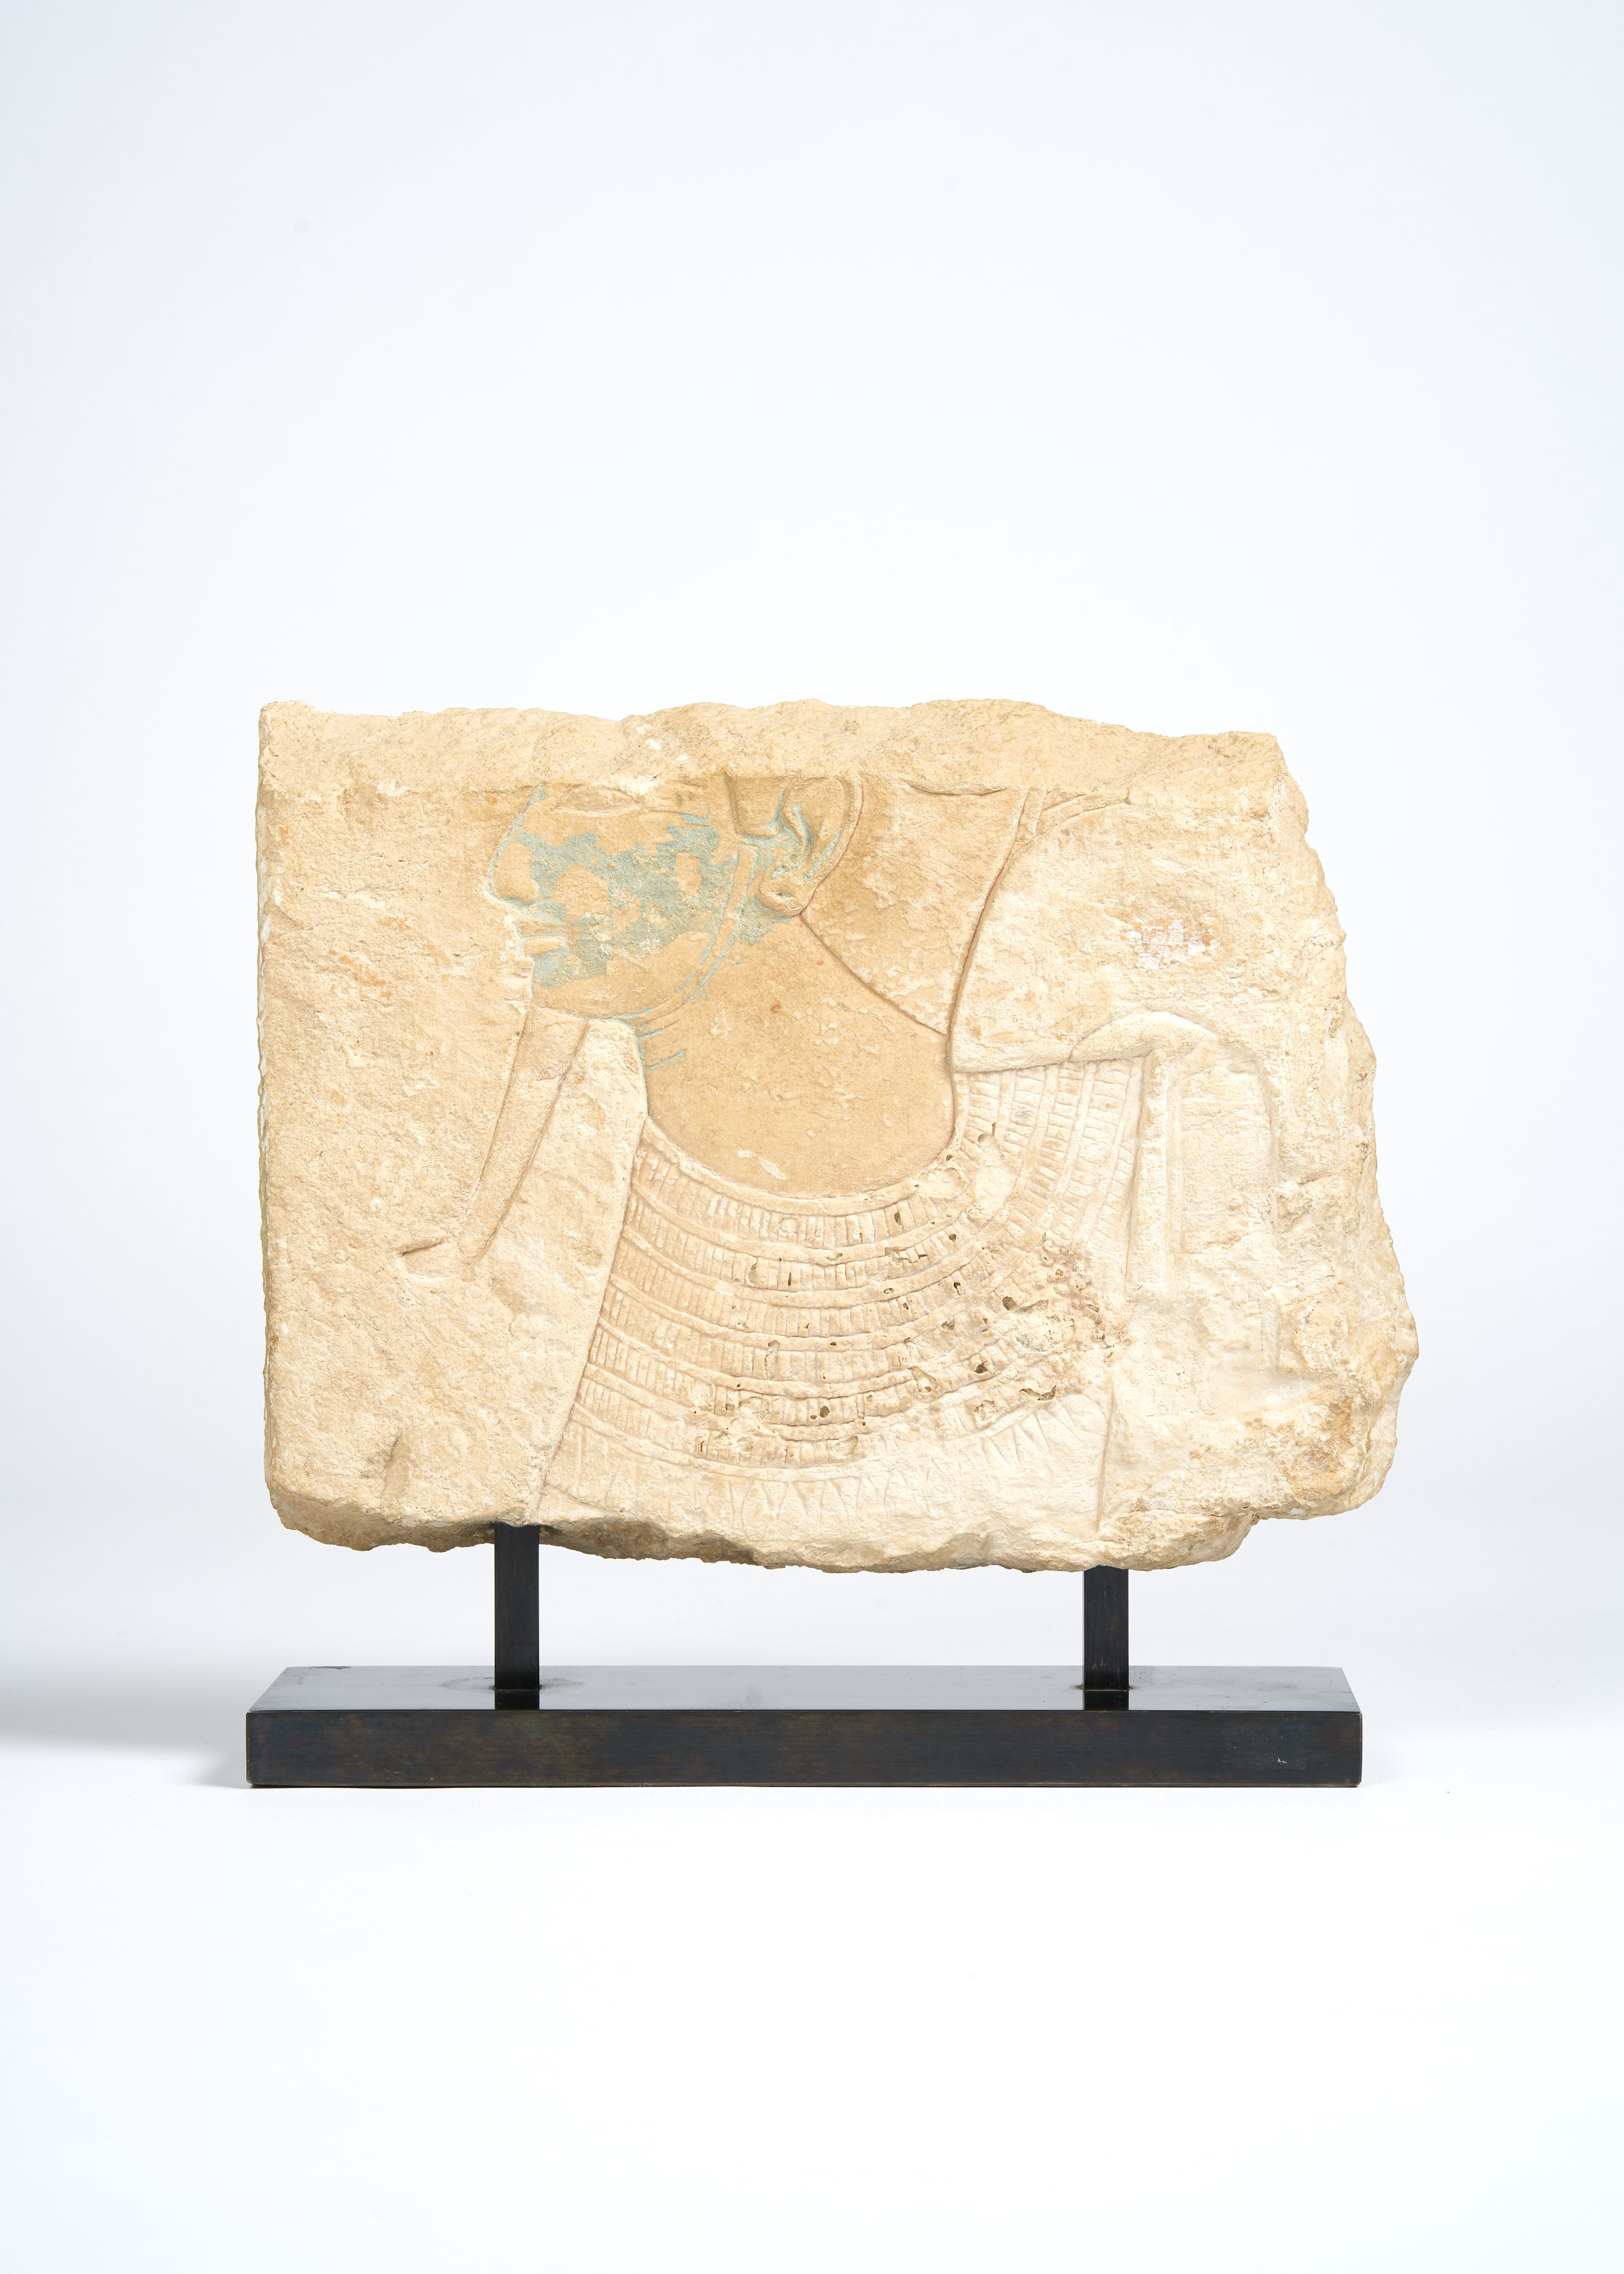 Egyptian Limestone Bas Relief Framgent with Blue Pigment